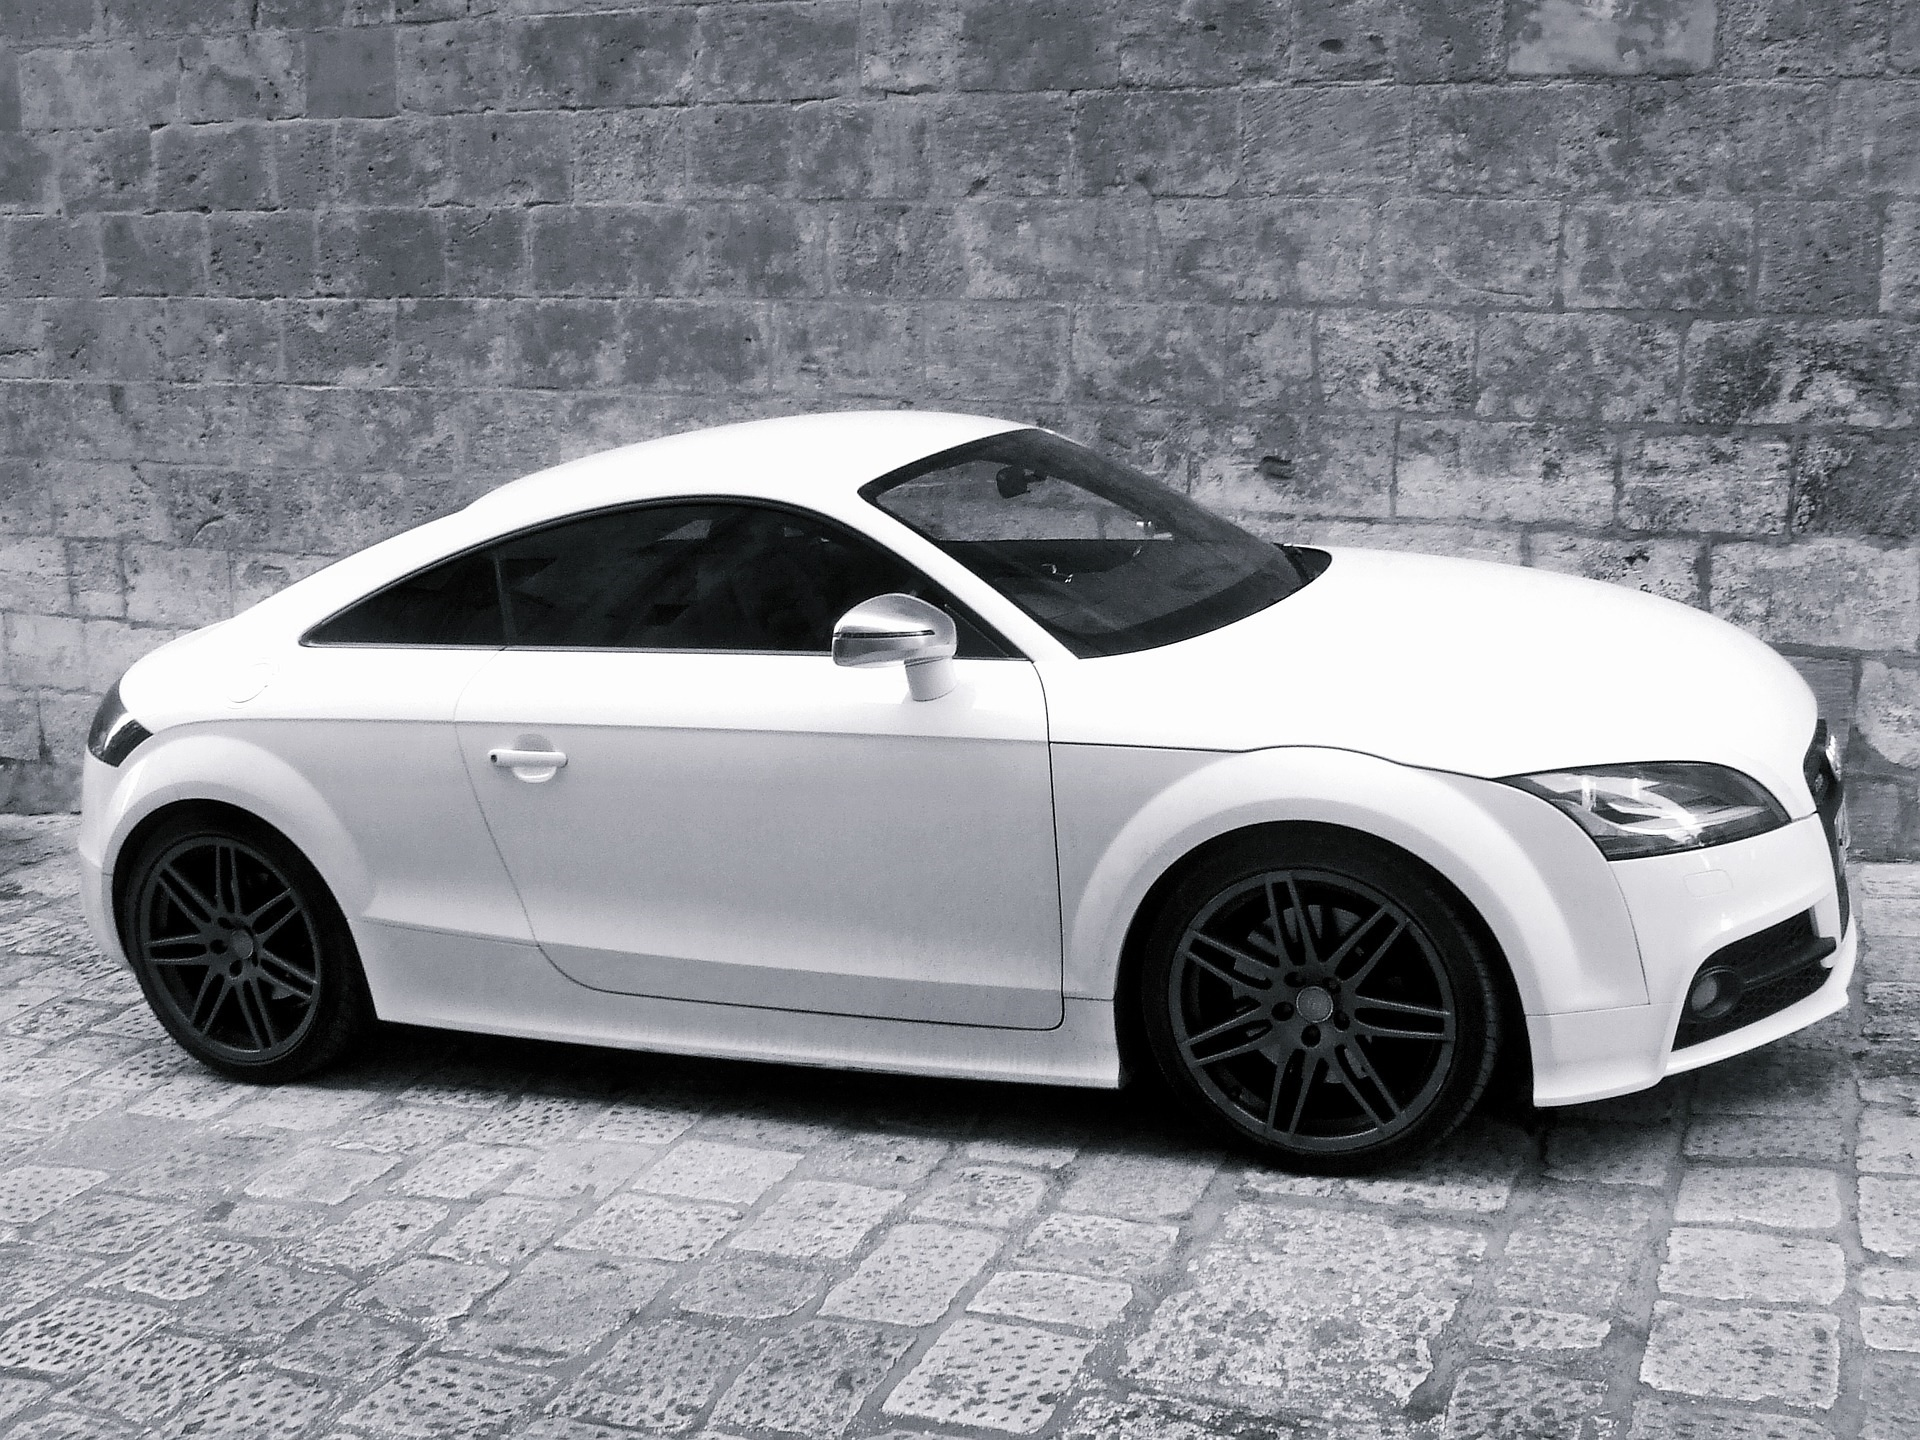 Hartlepool: Audi TT driver facing prison after police chase